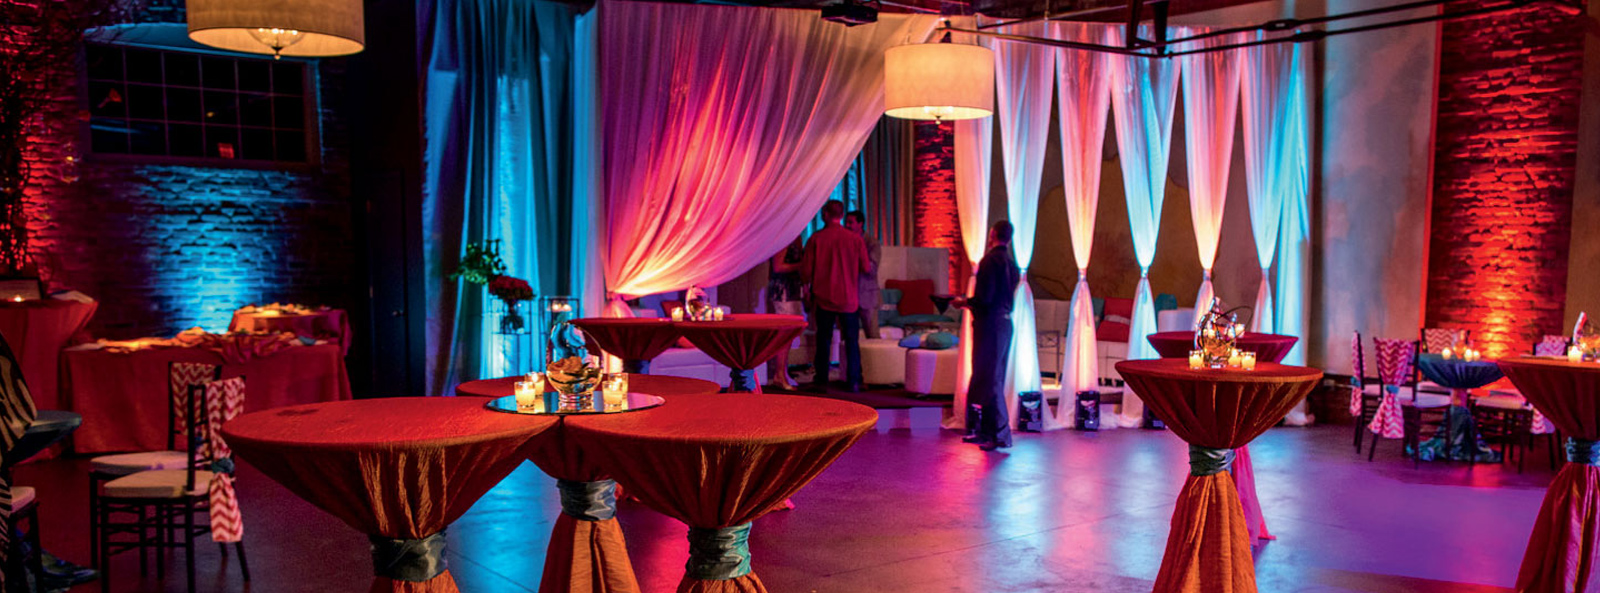 chair covers rental cleveland ohio coolest dorm chairs linens and rentals for weddings events parties l nique be unique